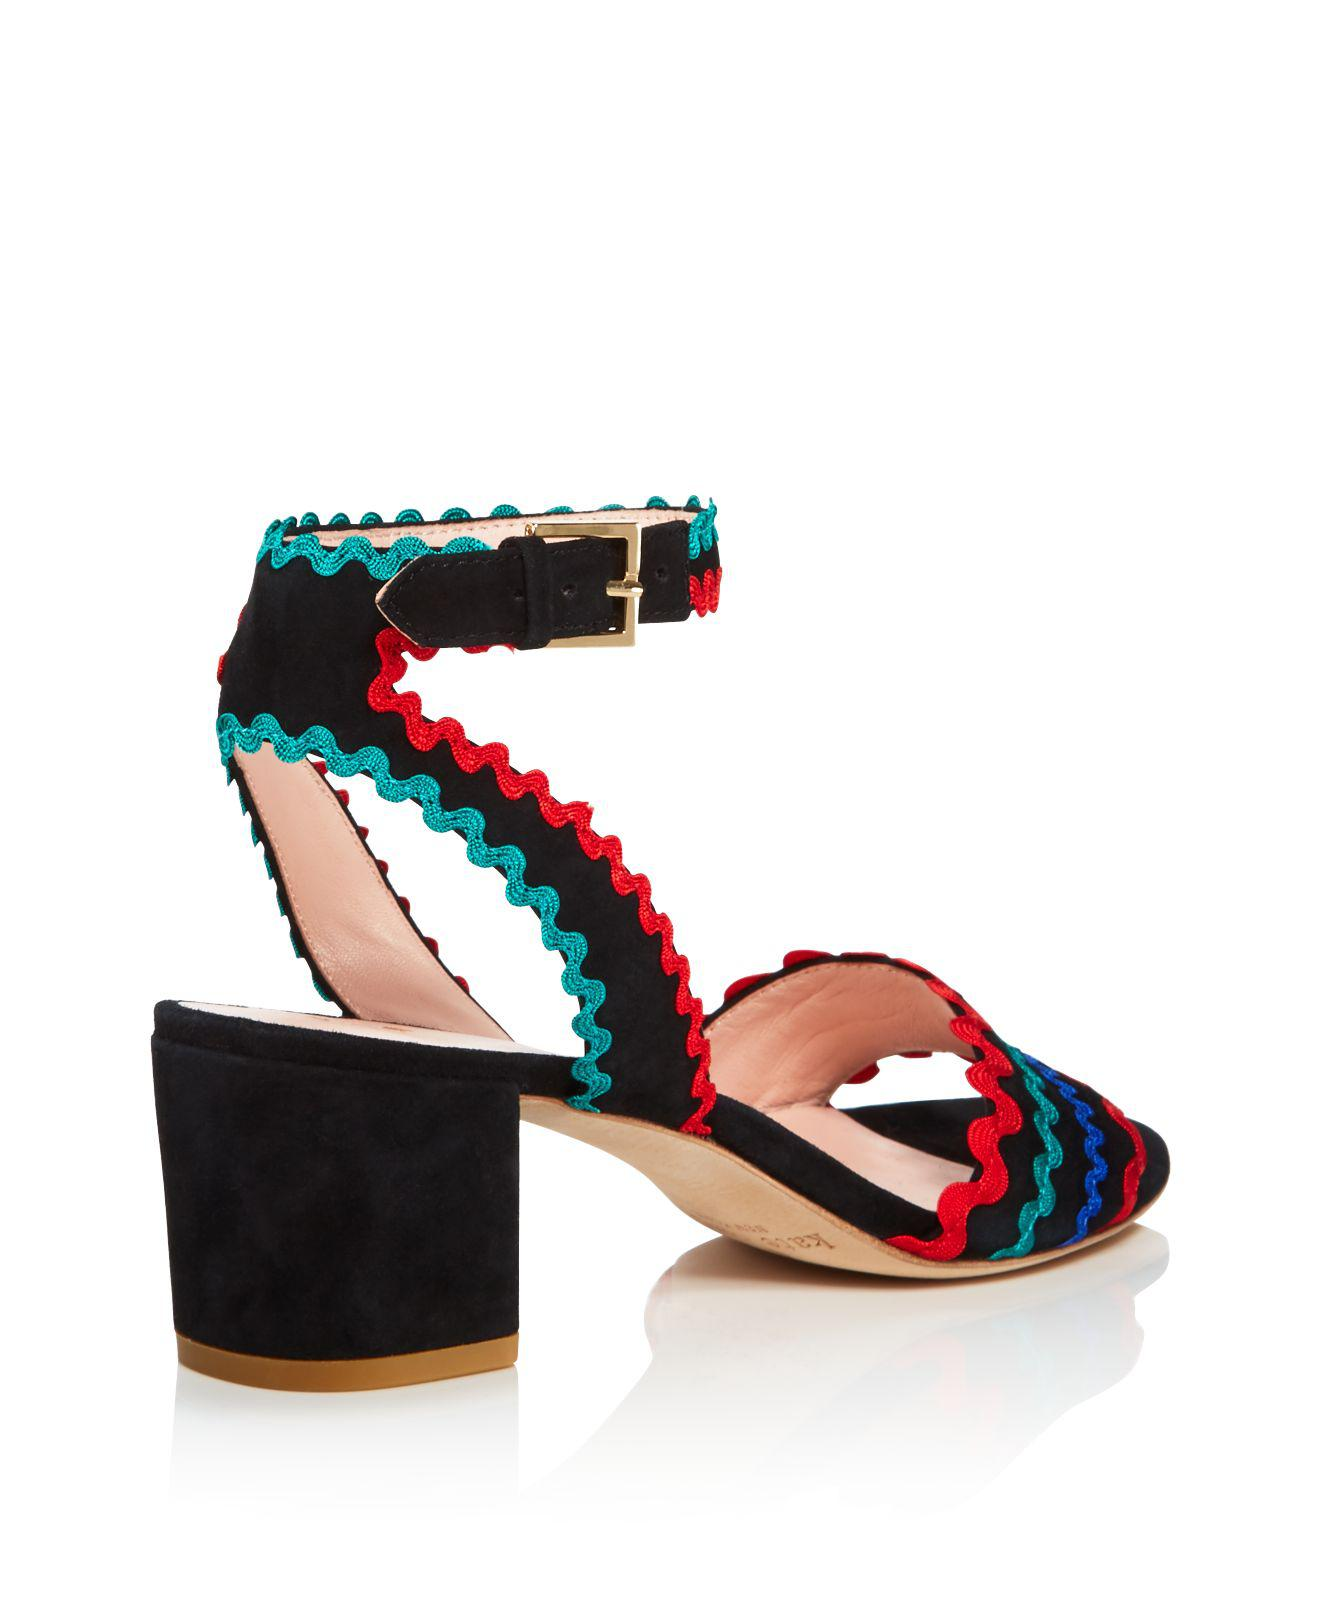 d1a8220db119 Lyst - Kate Spade Piedra Embellished Mid Heel Sandals in Black